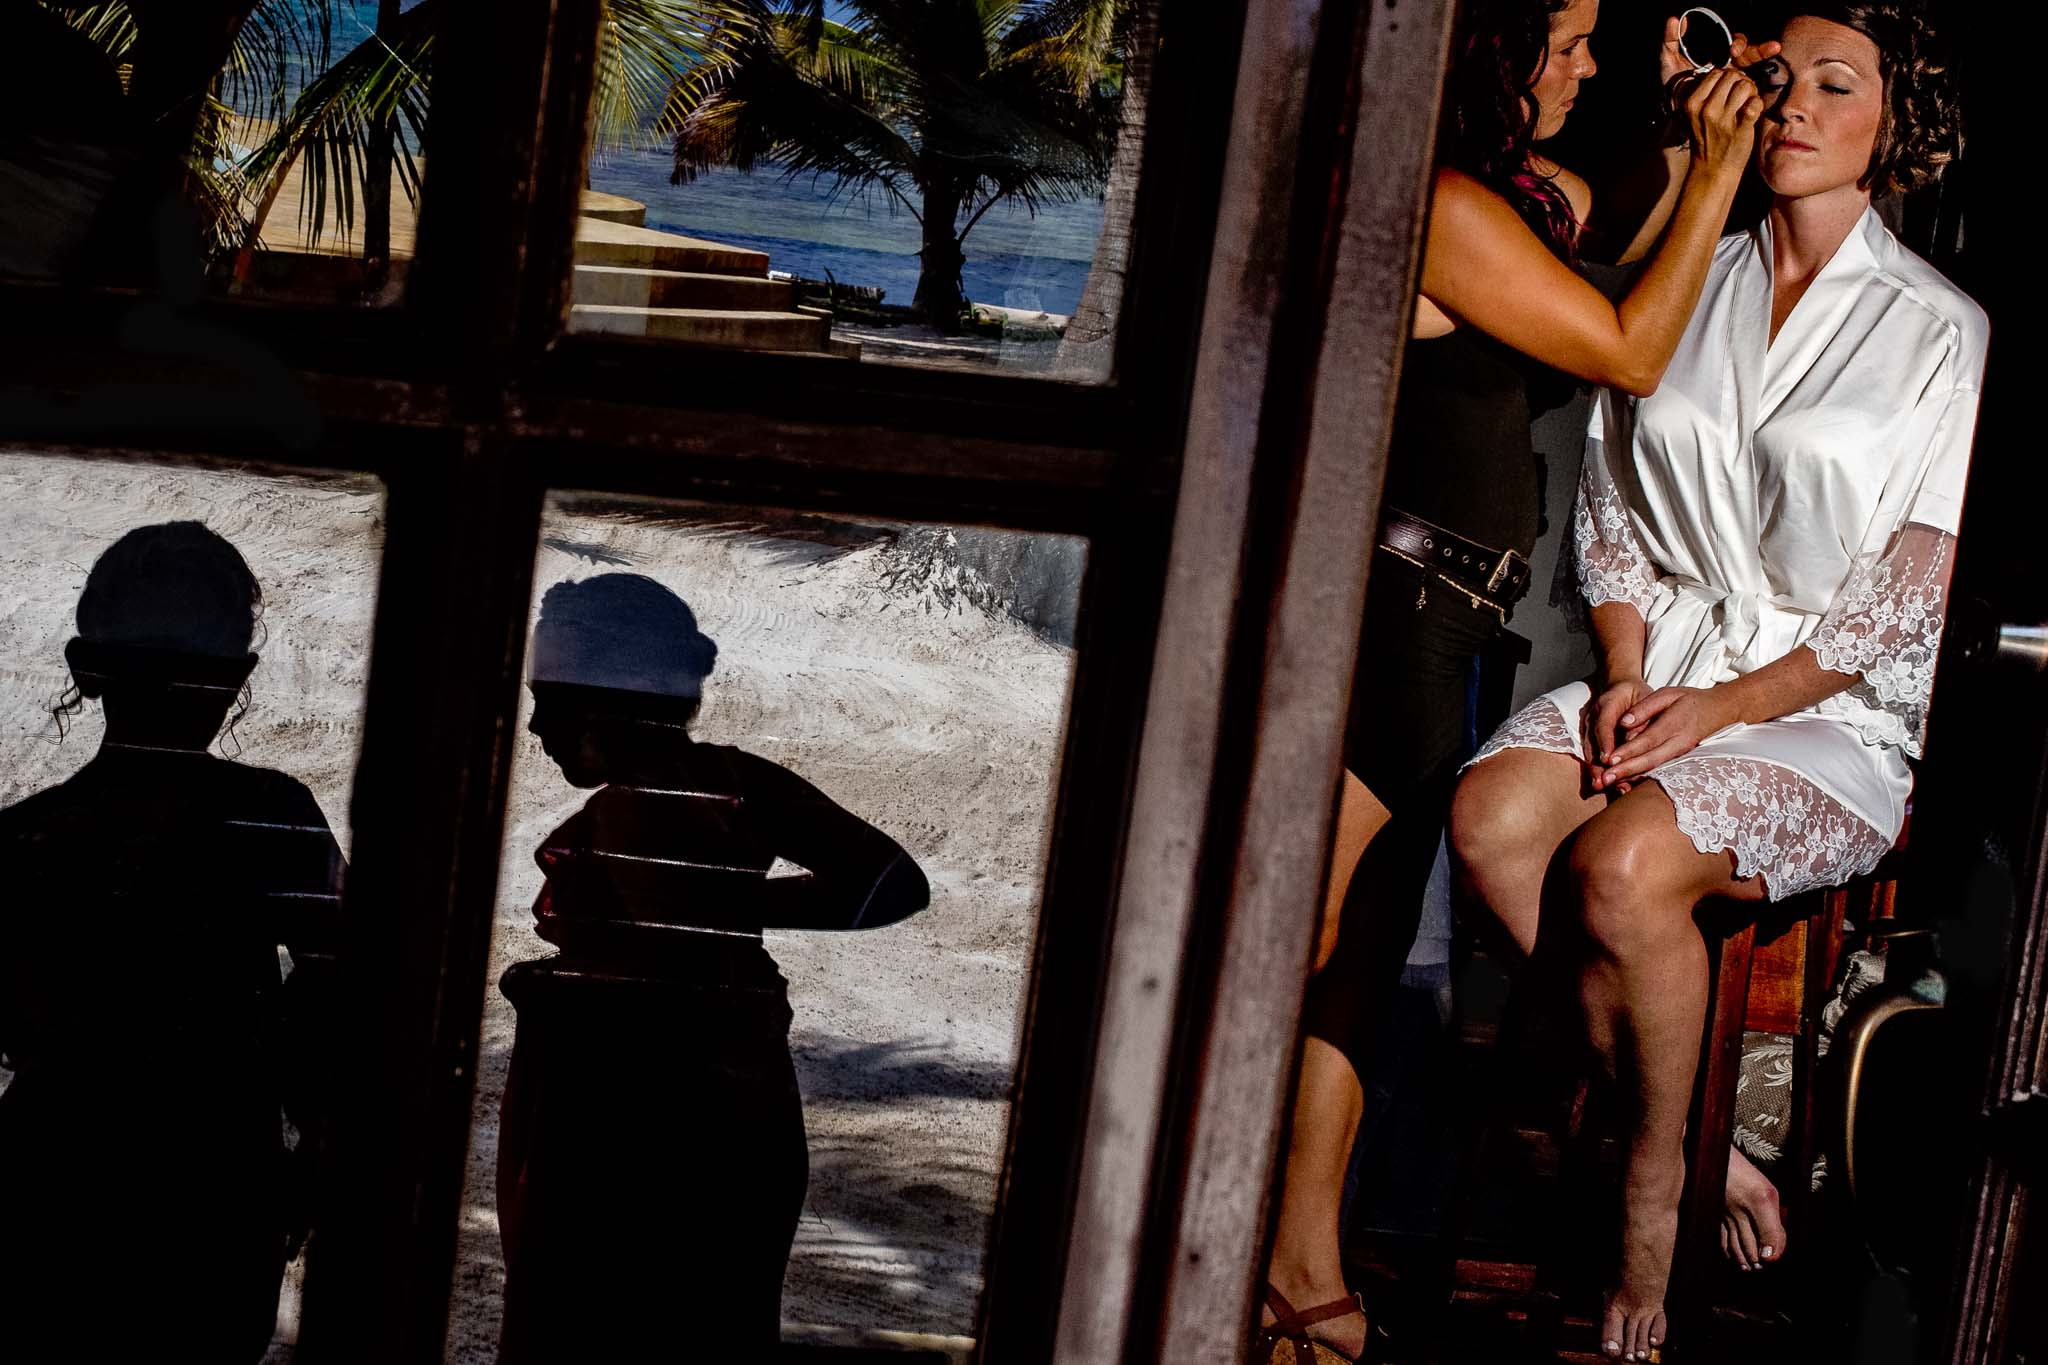 Bride Getting Ready through window with kids silhouetted at Portofino Beach Resort in Belize